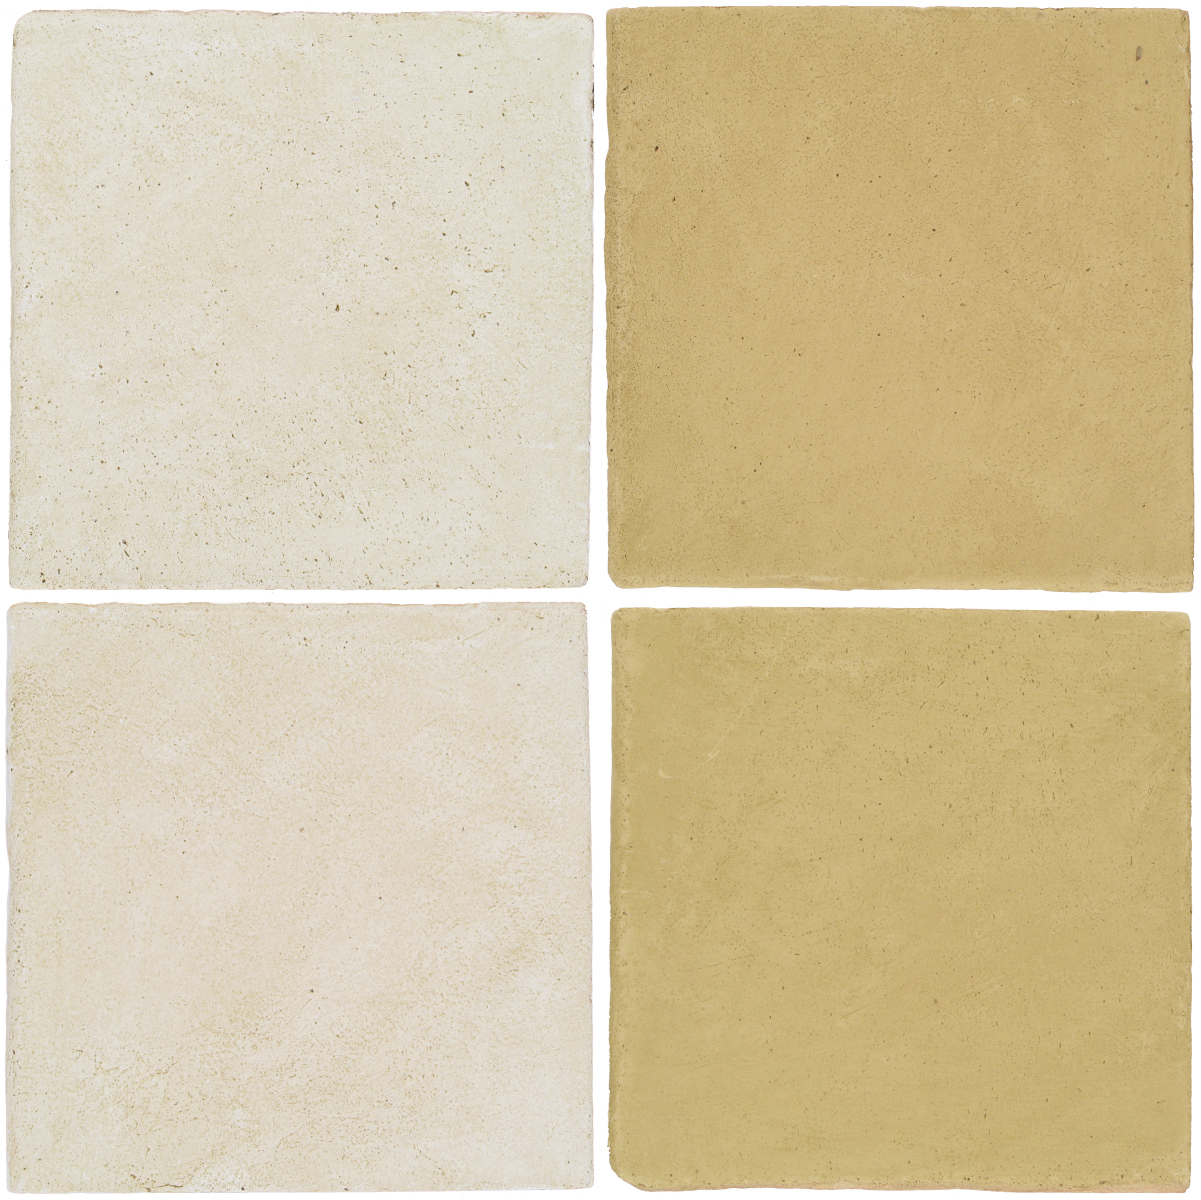 Pedralbes Antique Terracotta  2 Color Combinations  OHS-PGAW Antique White + OHS-PGGW Golden W.